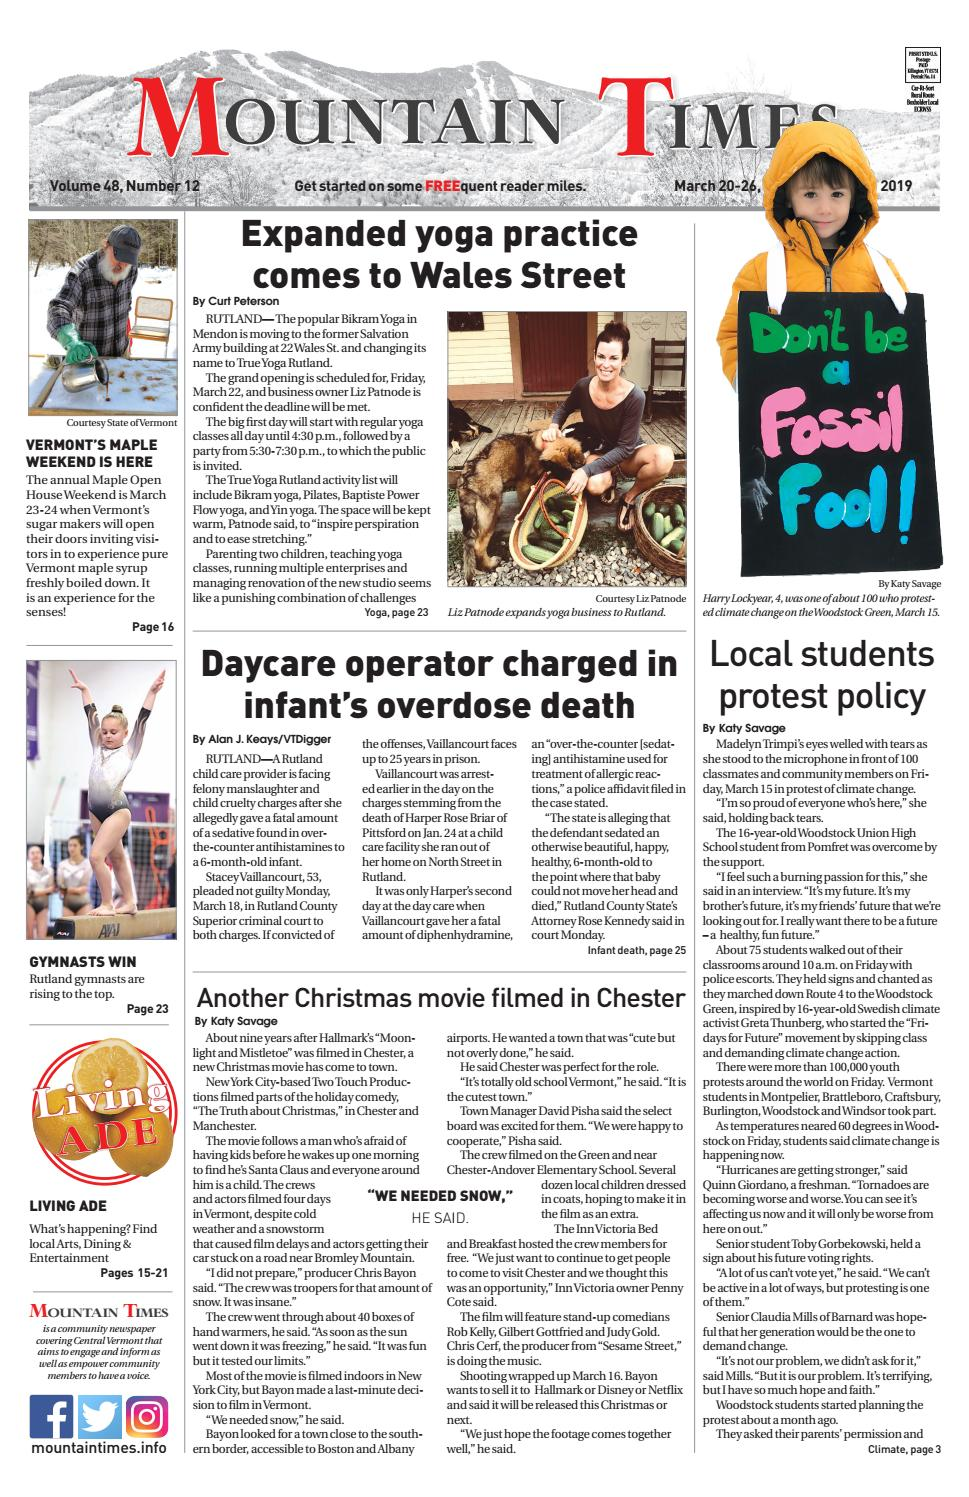 Mountain Times March 20, 2019 by Polly Lynn - issuu